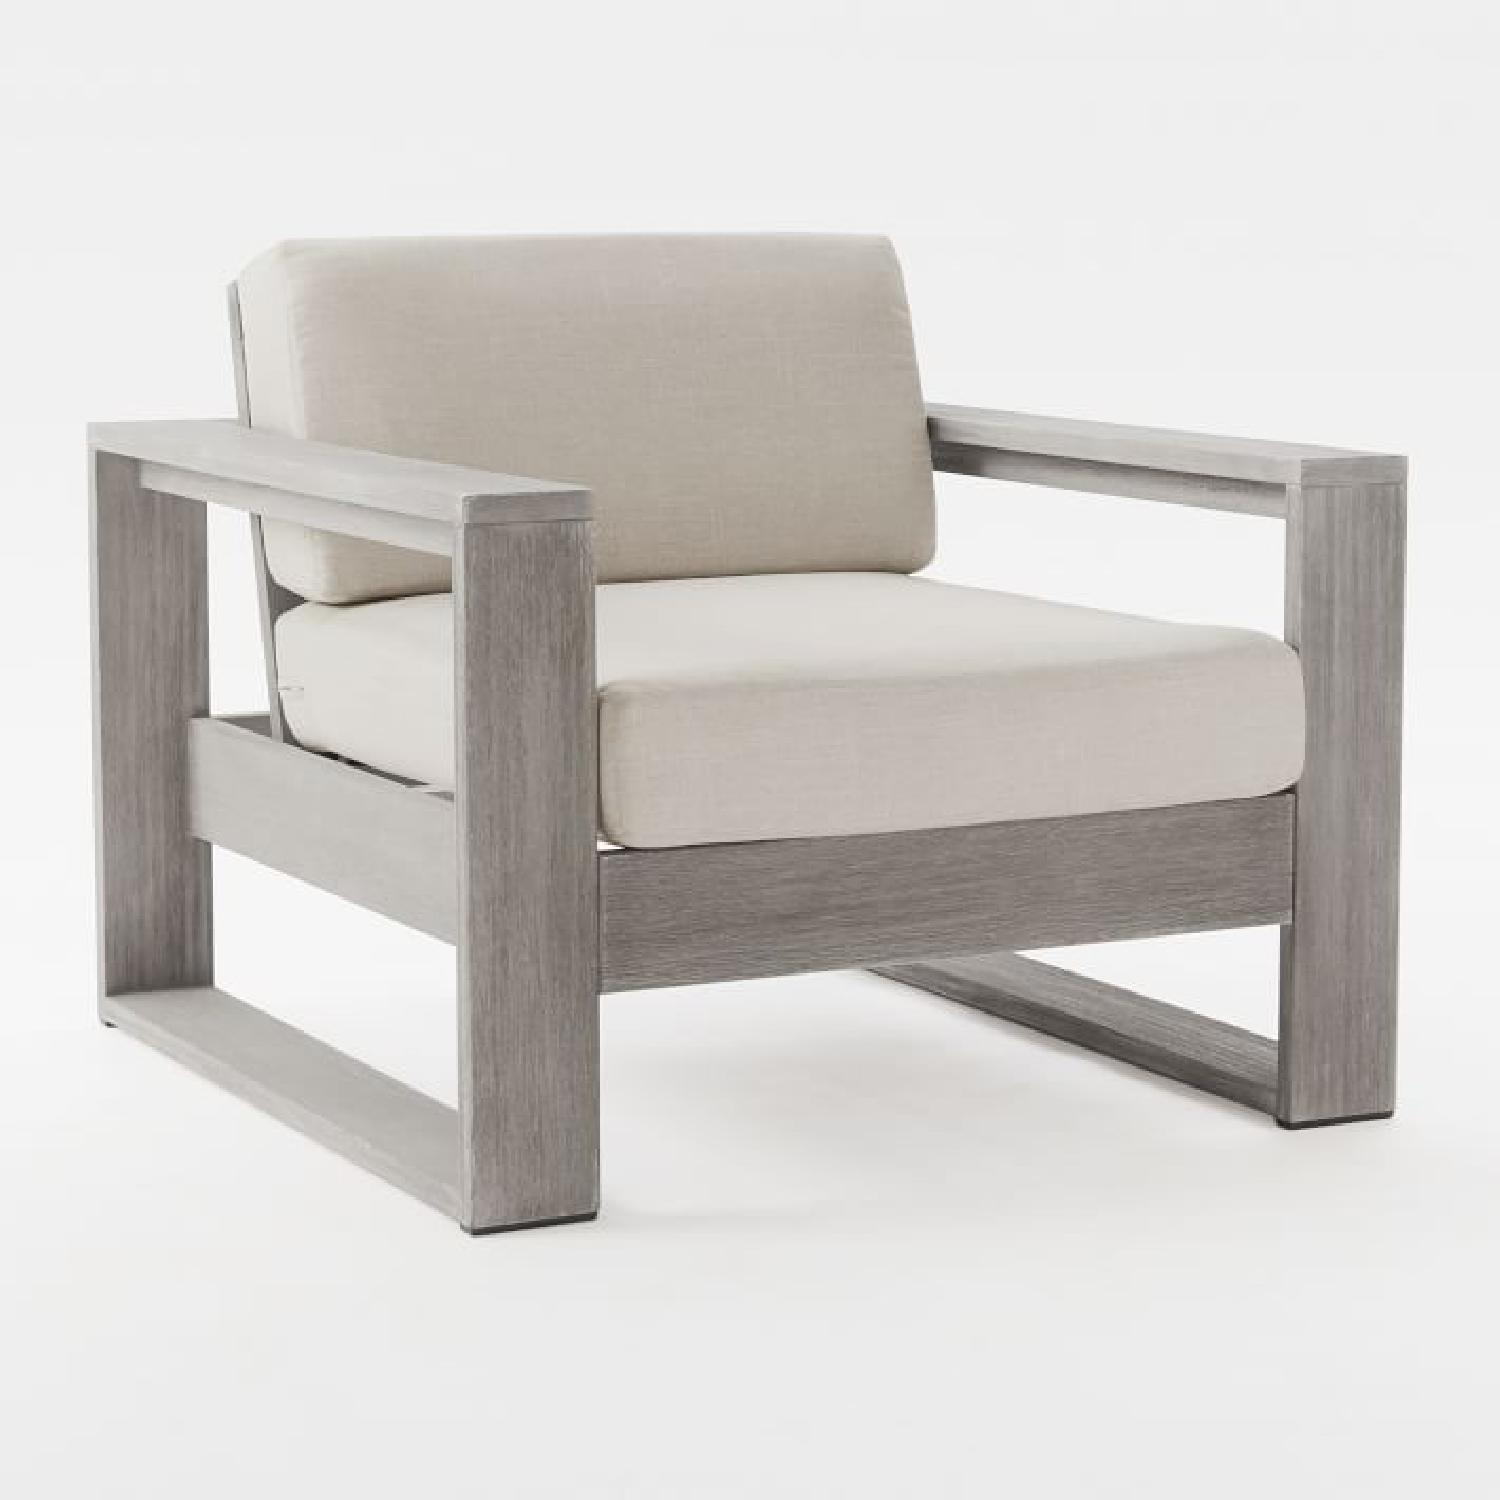 West Elm Portside Lounge Chair - image-0